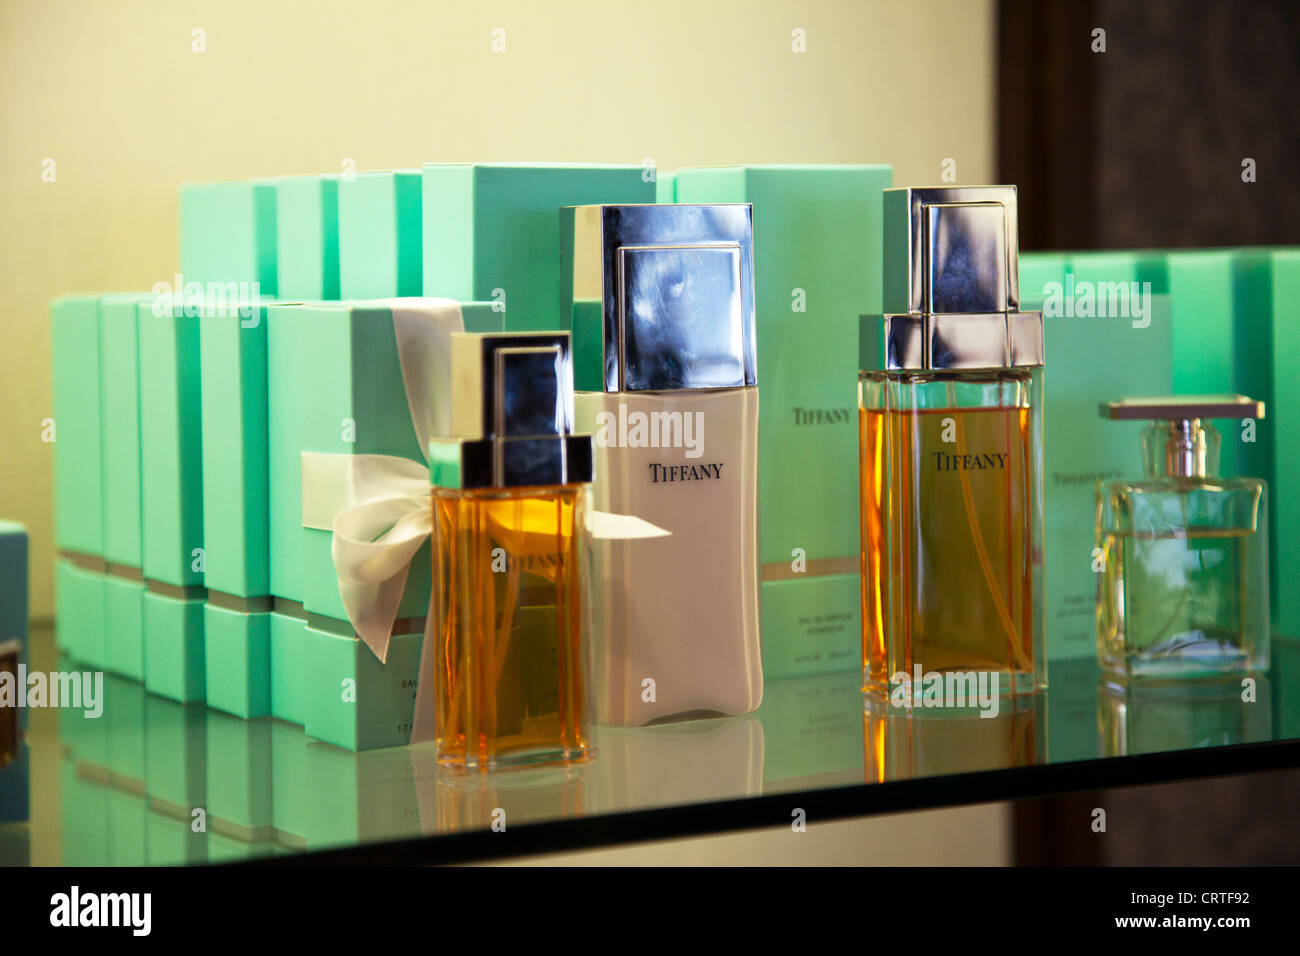 Inside the iconic Tiffany & Co Jewelry Store in New York City Fifth Avenue perfume fragrance bottles and boxes - Stock Image